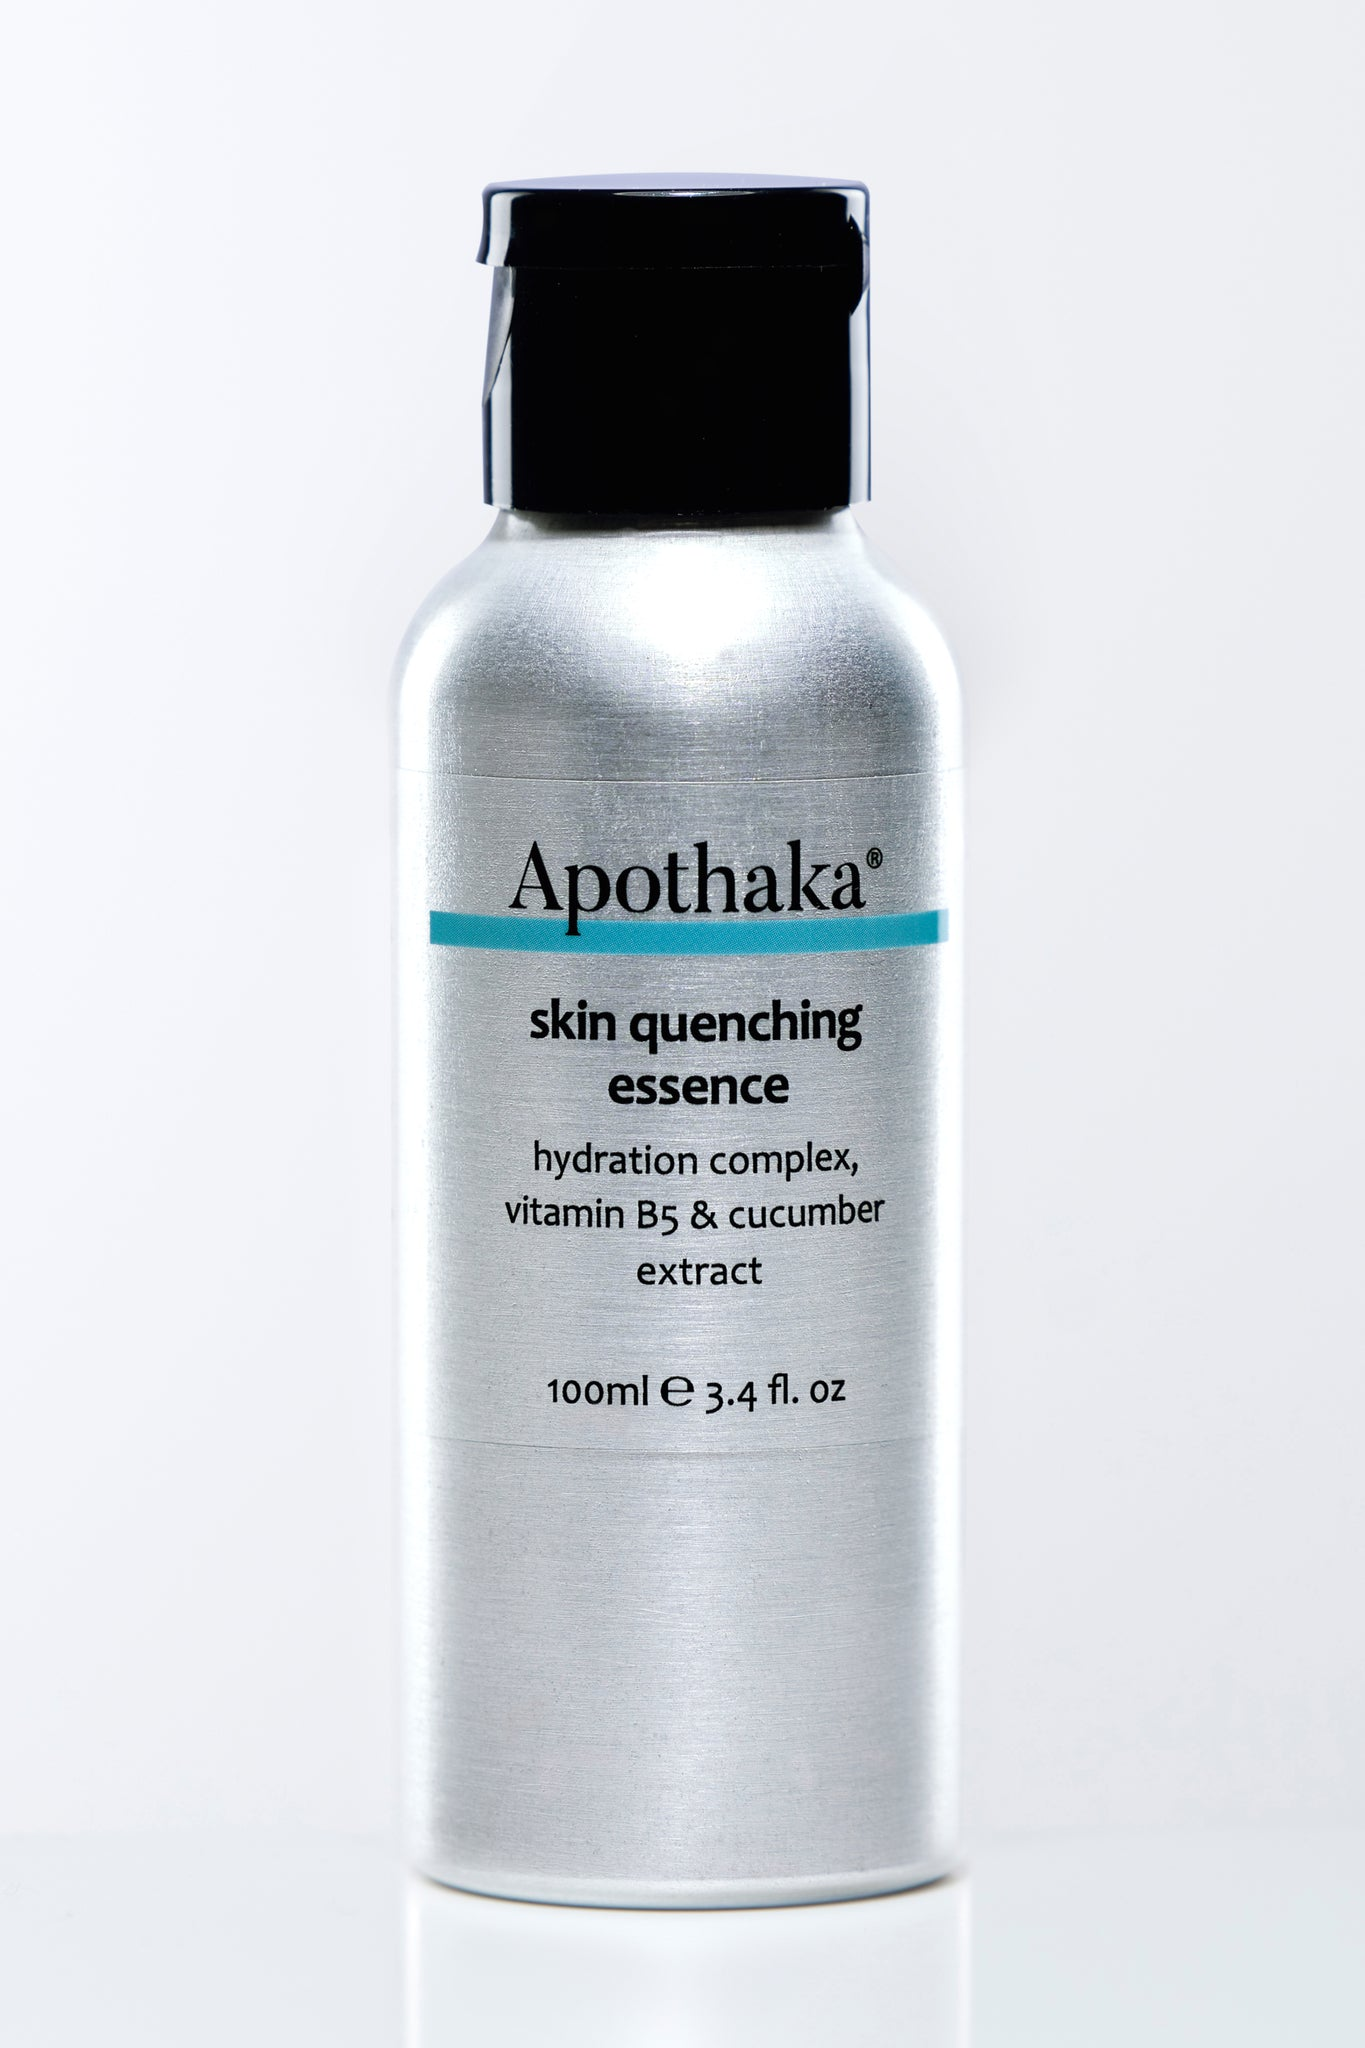 Apothaka skin quenching essence with NMF - fragrance free